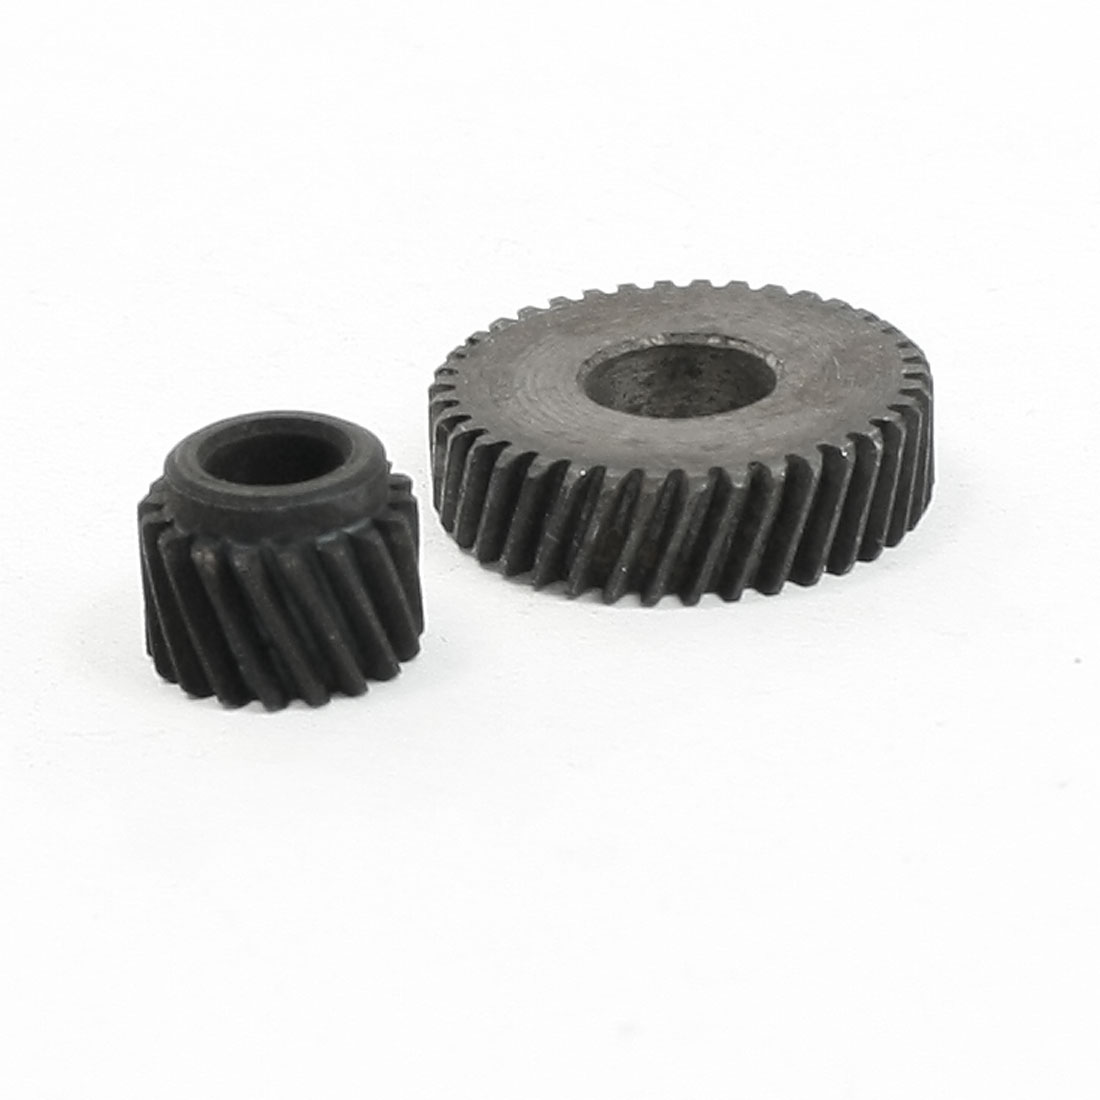 Electric Tool Repair Part Spiral Bevel Gear Pinion for LG 110